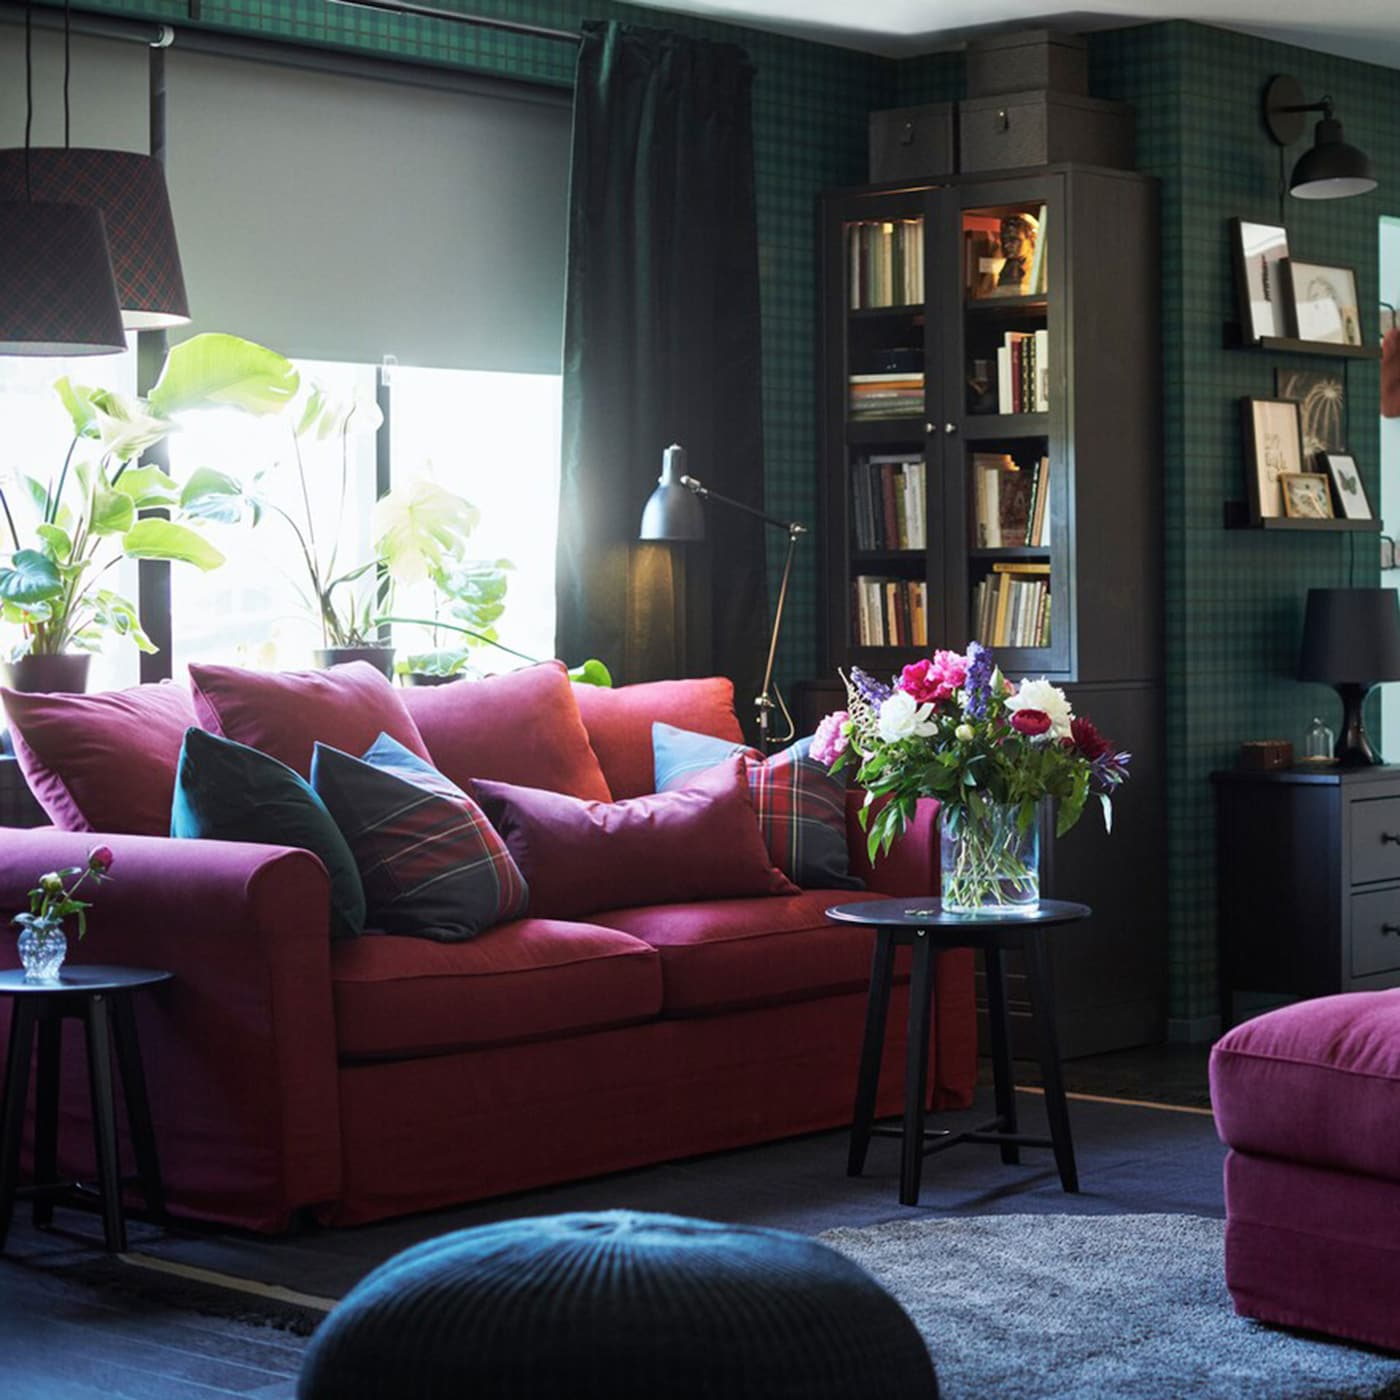 Bold Room Designs: Bold Living Room Ideas For A Space With Attitude